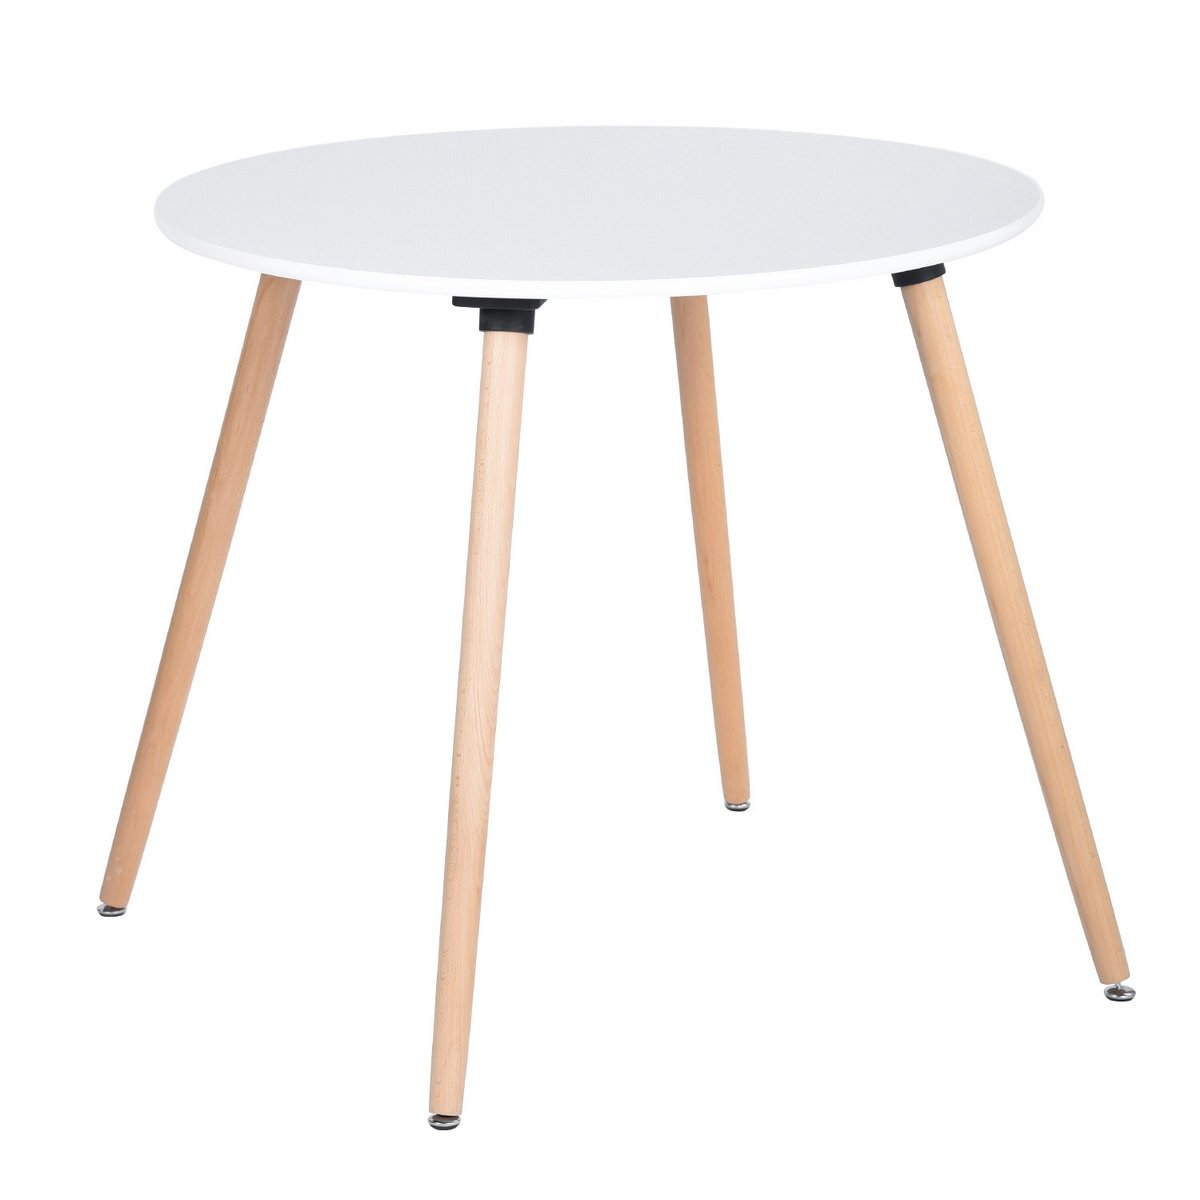 WarmCentre Round Table Dining Kitchen Table Wooden Coffee Table White Dining Room Kitchen Home Furniture